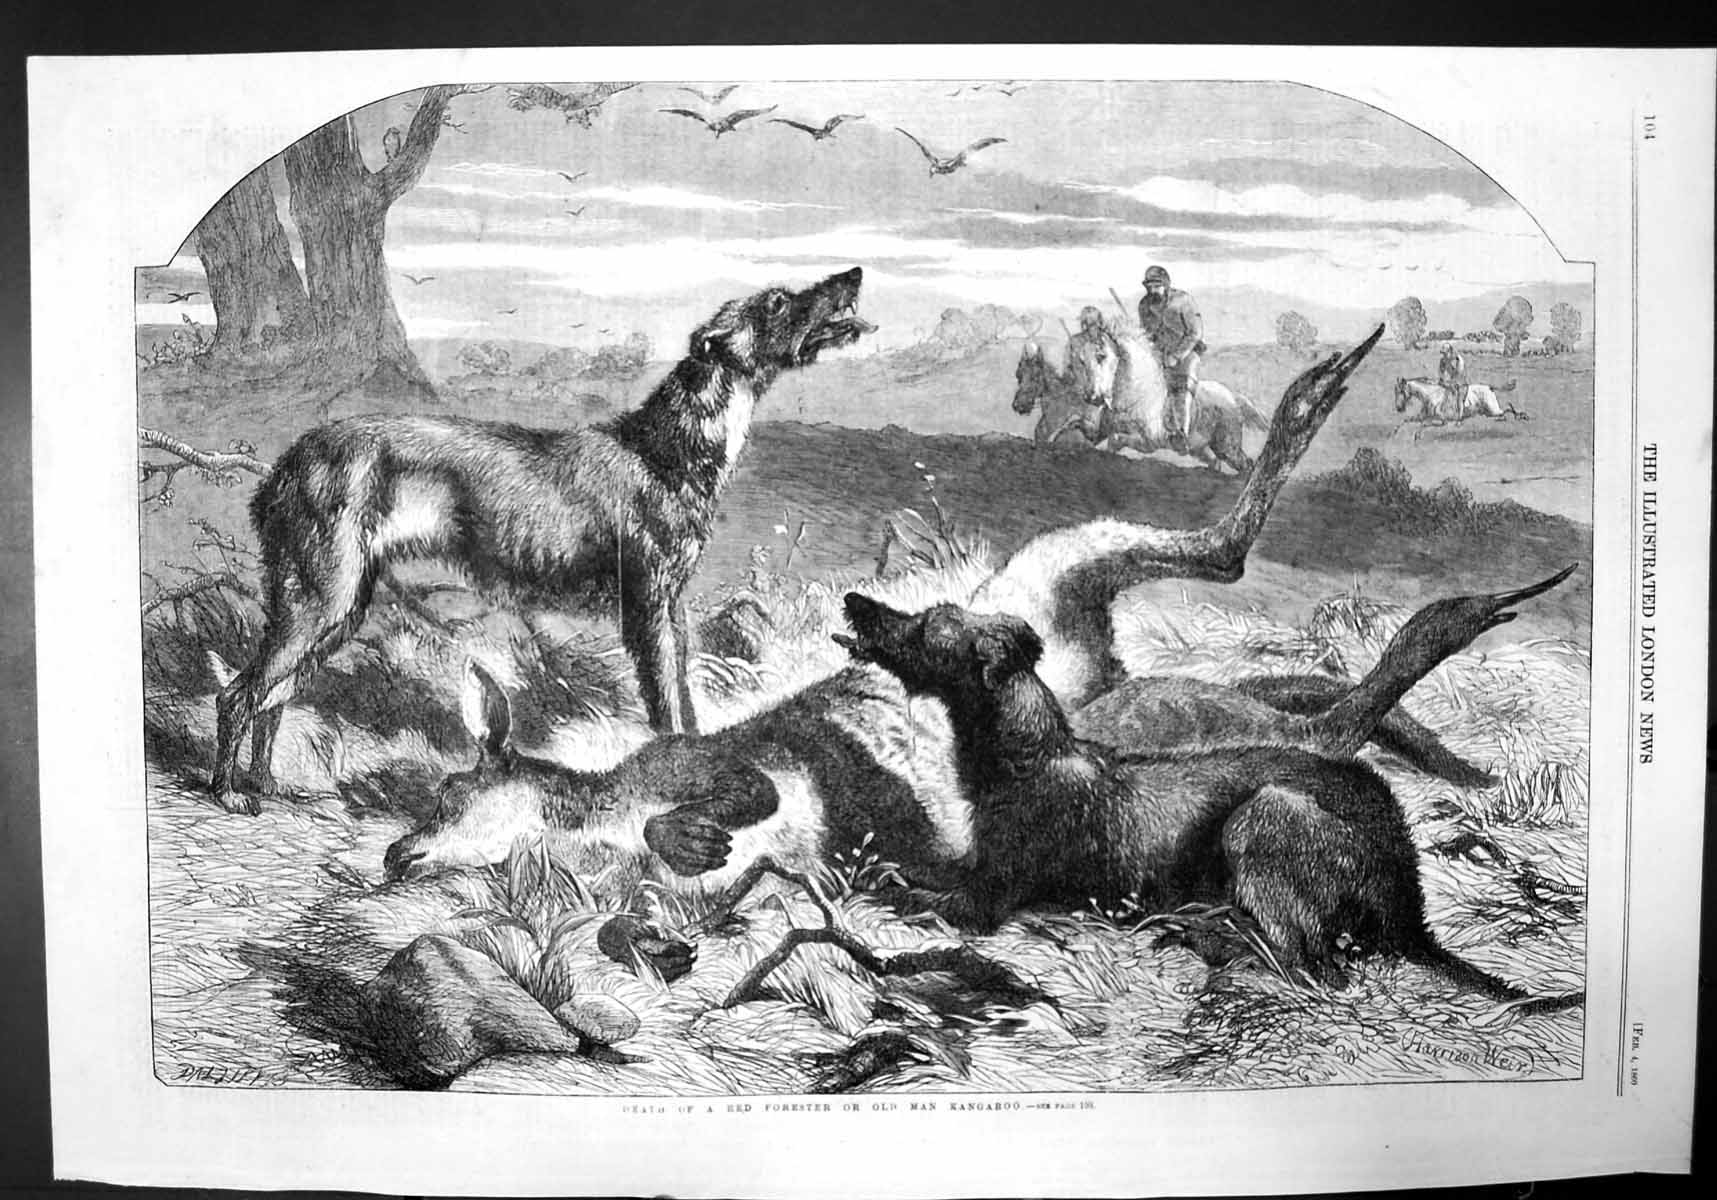 [Print Death A Red Forester Or Man Kangaroo Dogs Hunting 1860 819J732 Old Original]